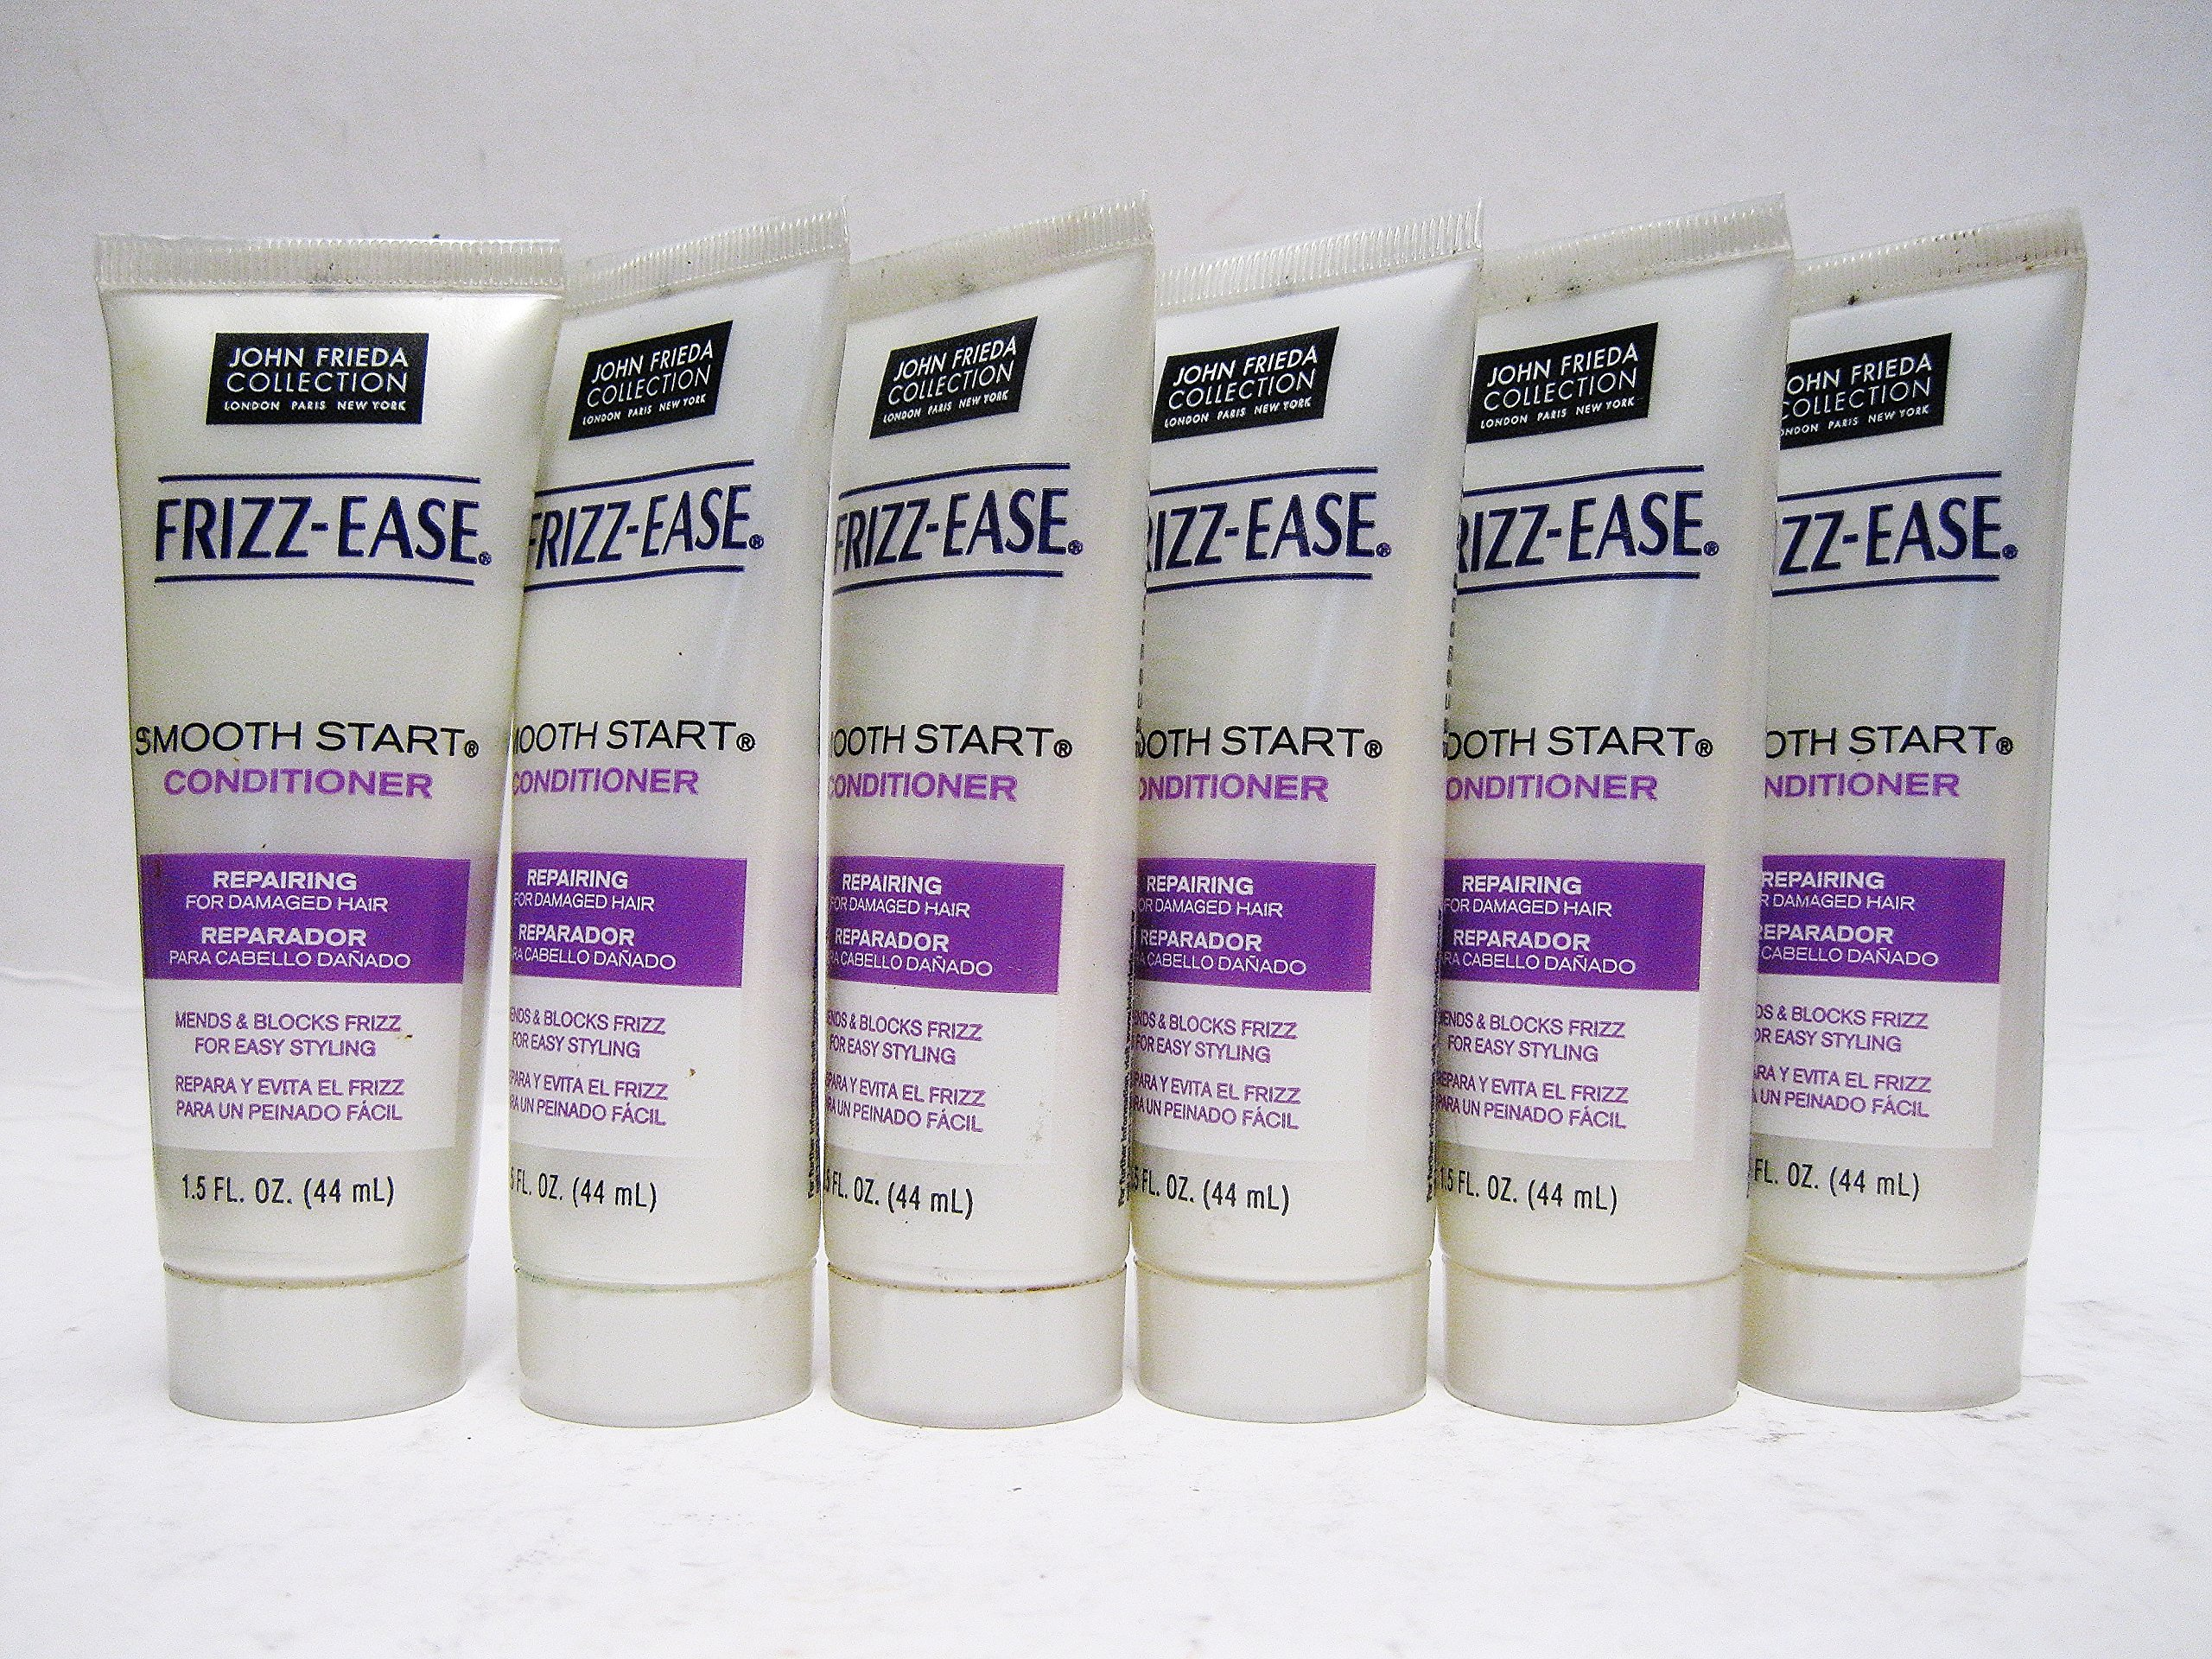 John Frieda Collection Frizz Ease Smooth Start Conditioner 1.5 Fl Oz Travel Size (pack of 6)